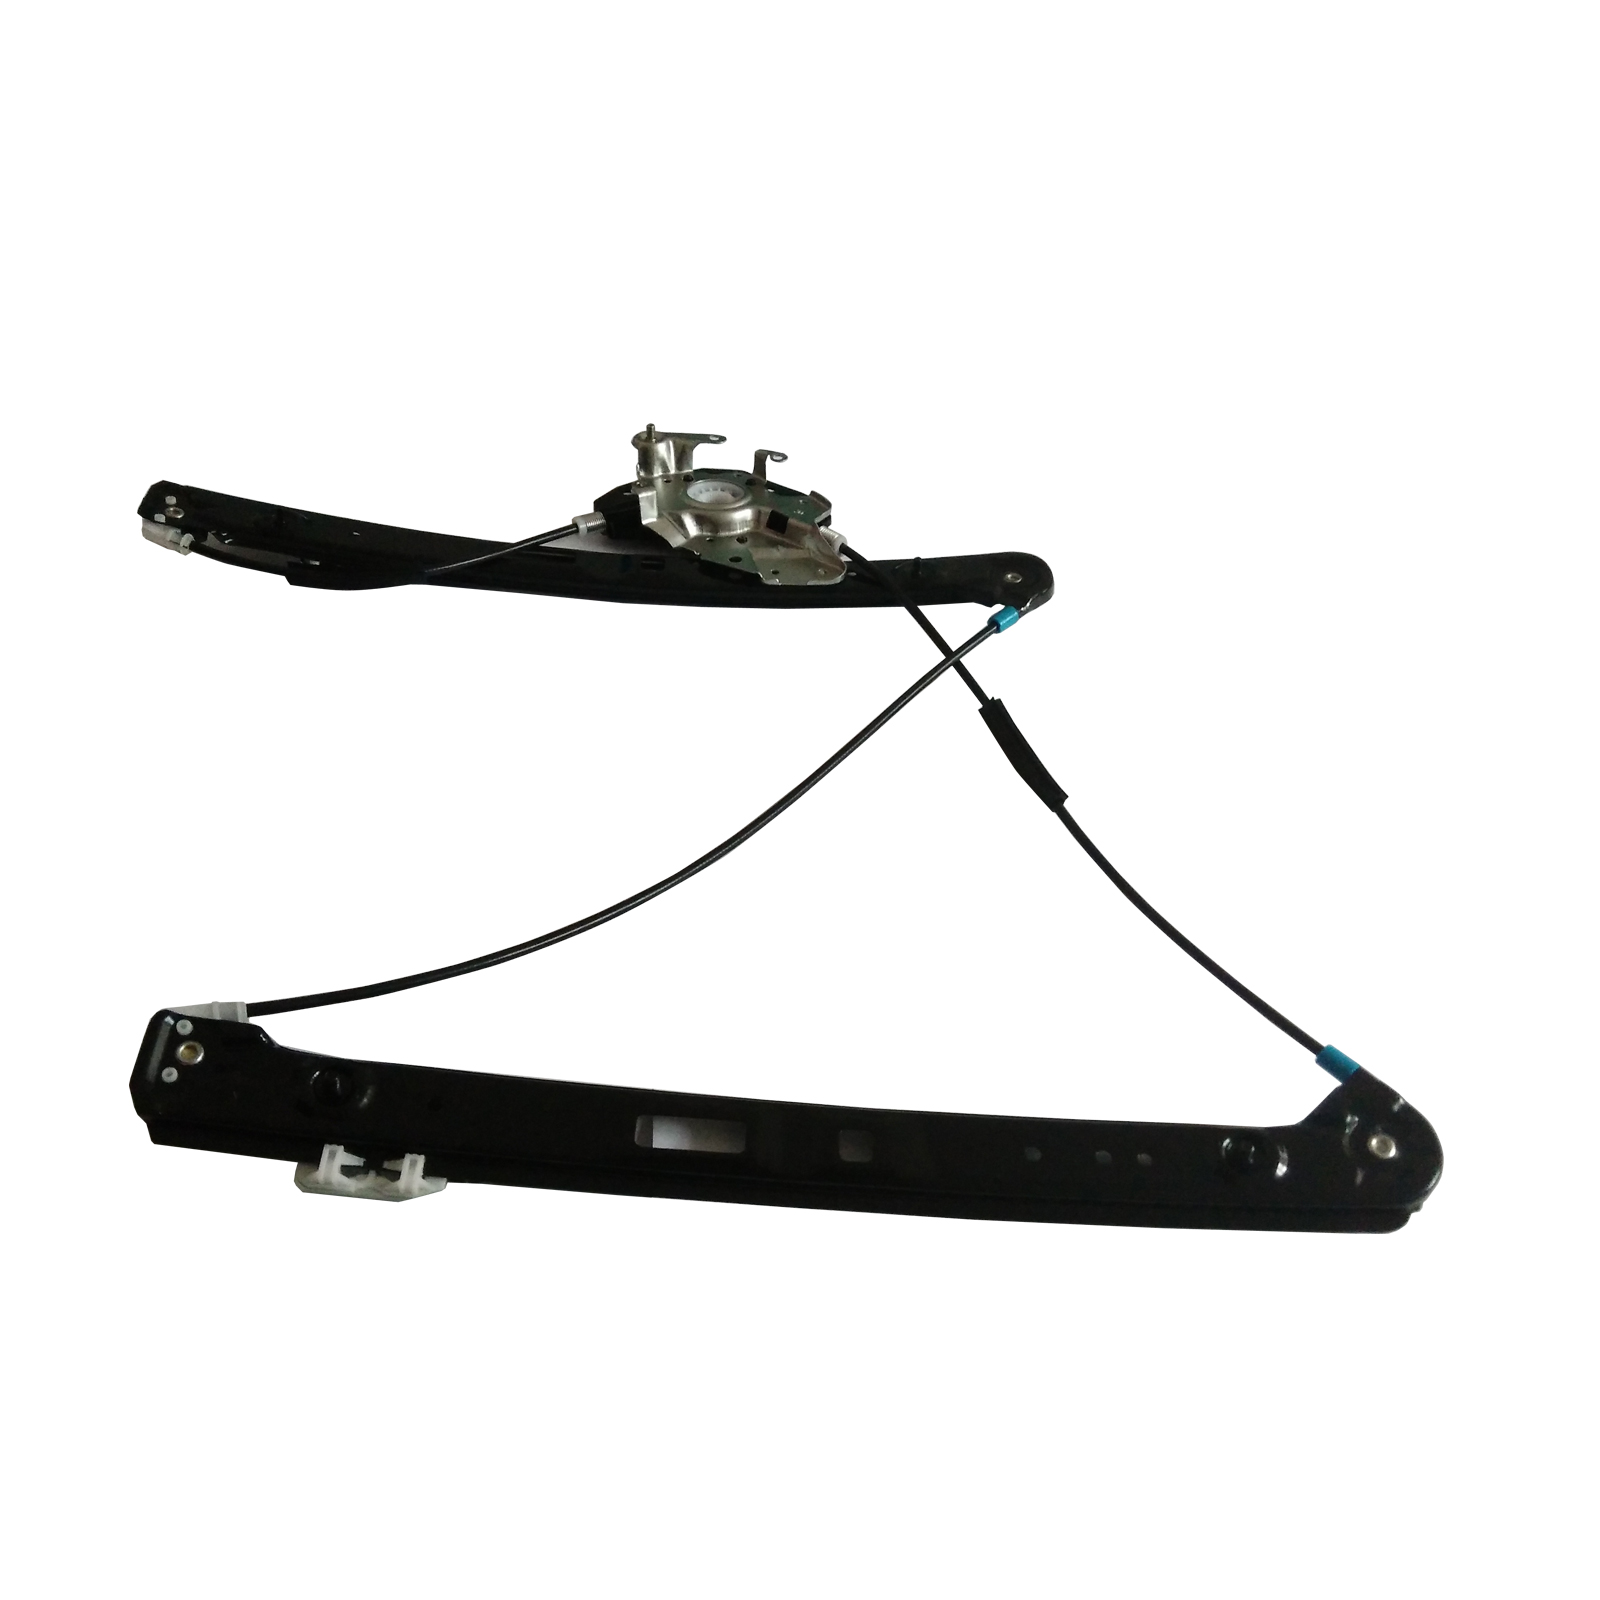 Bmw 3 series e46 front right side window regulator 318i for 2002 bmw 325i driver side window regulator